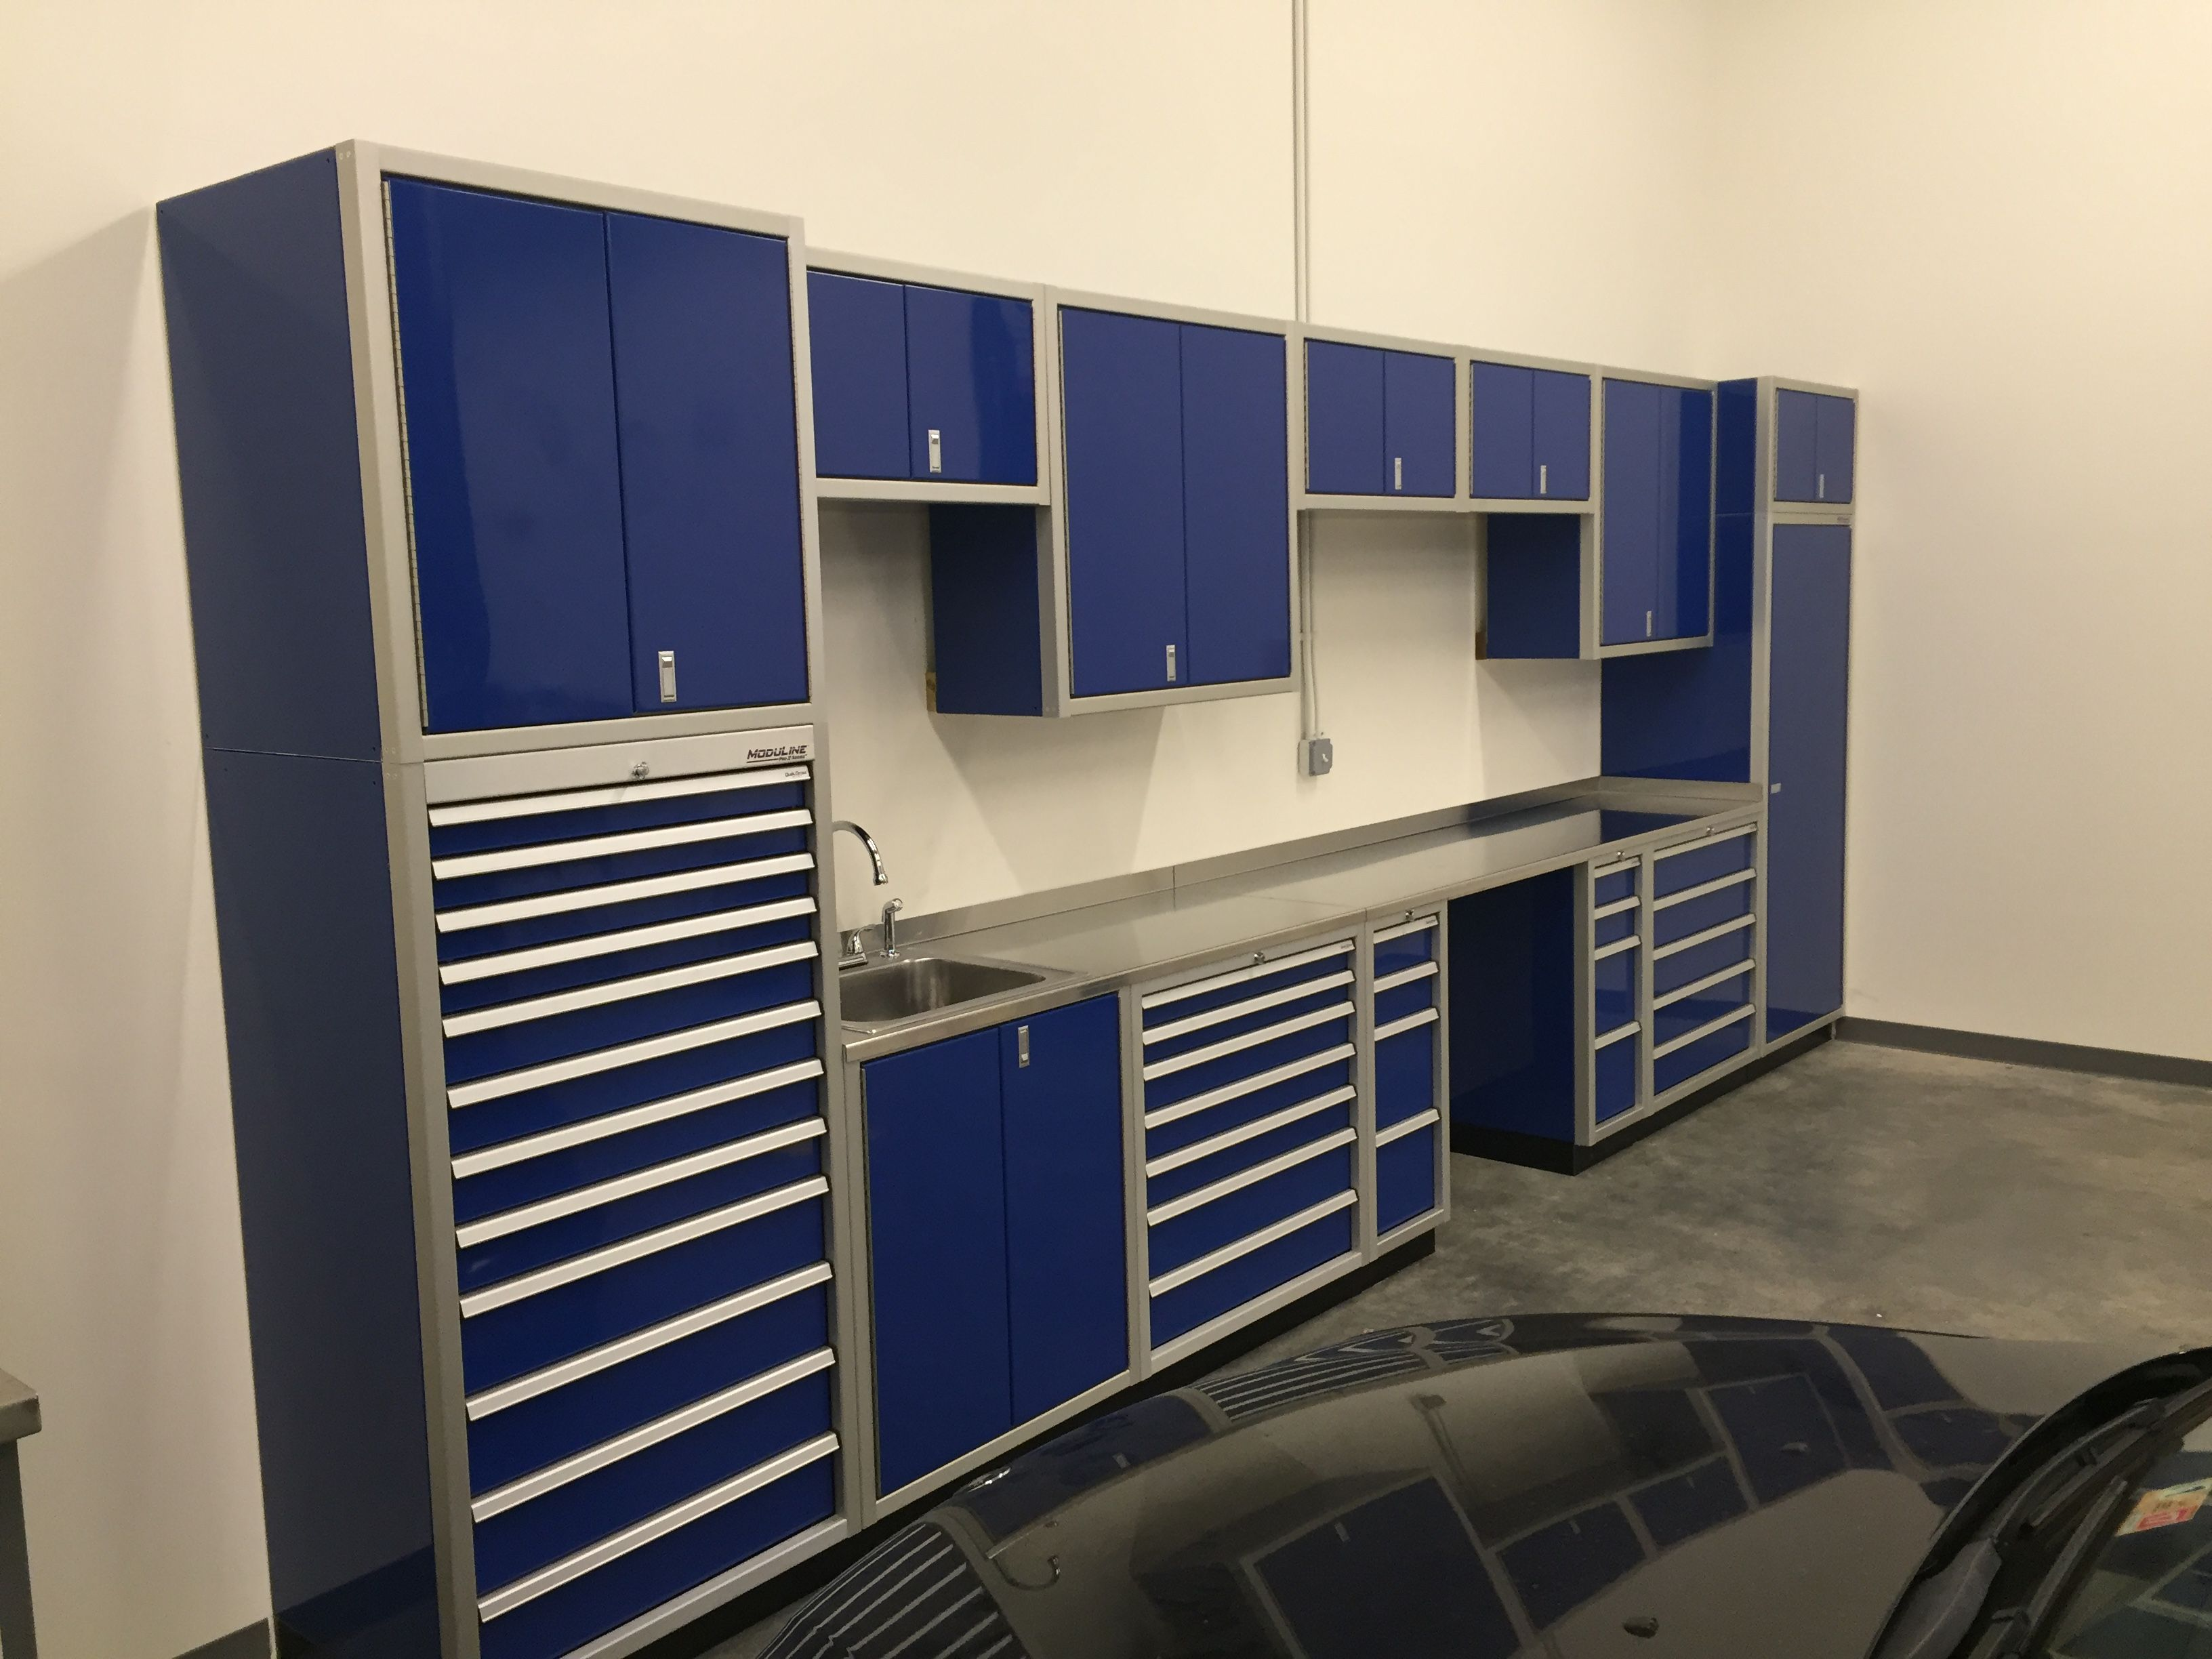 Blue Aluminum Garage Cabinets Dream Garage Has Tool Box